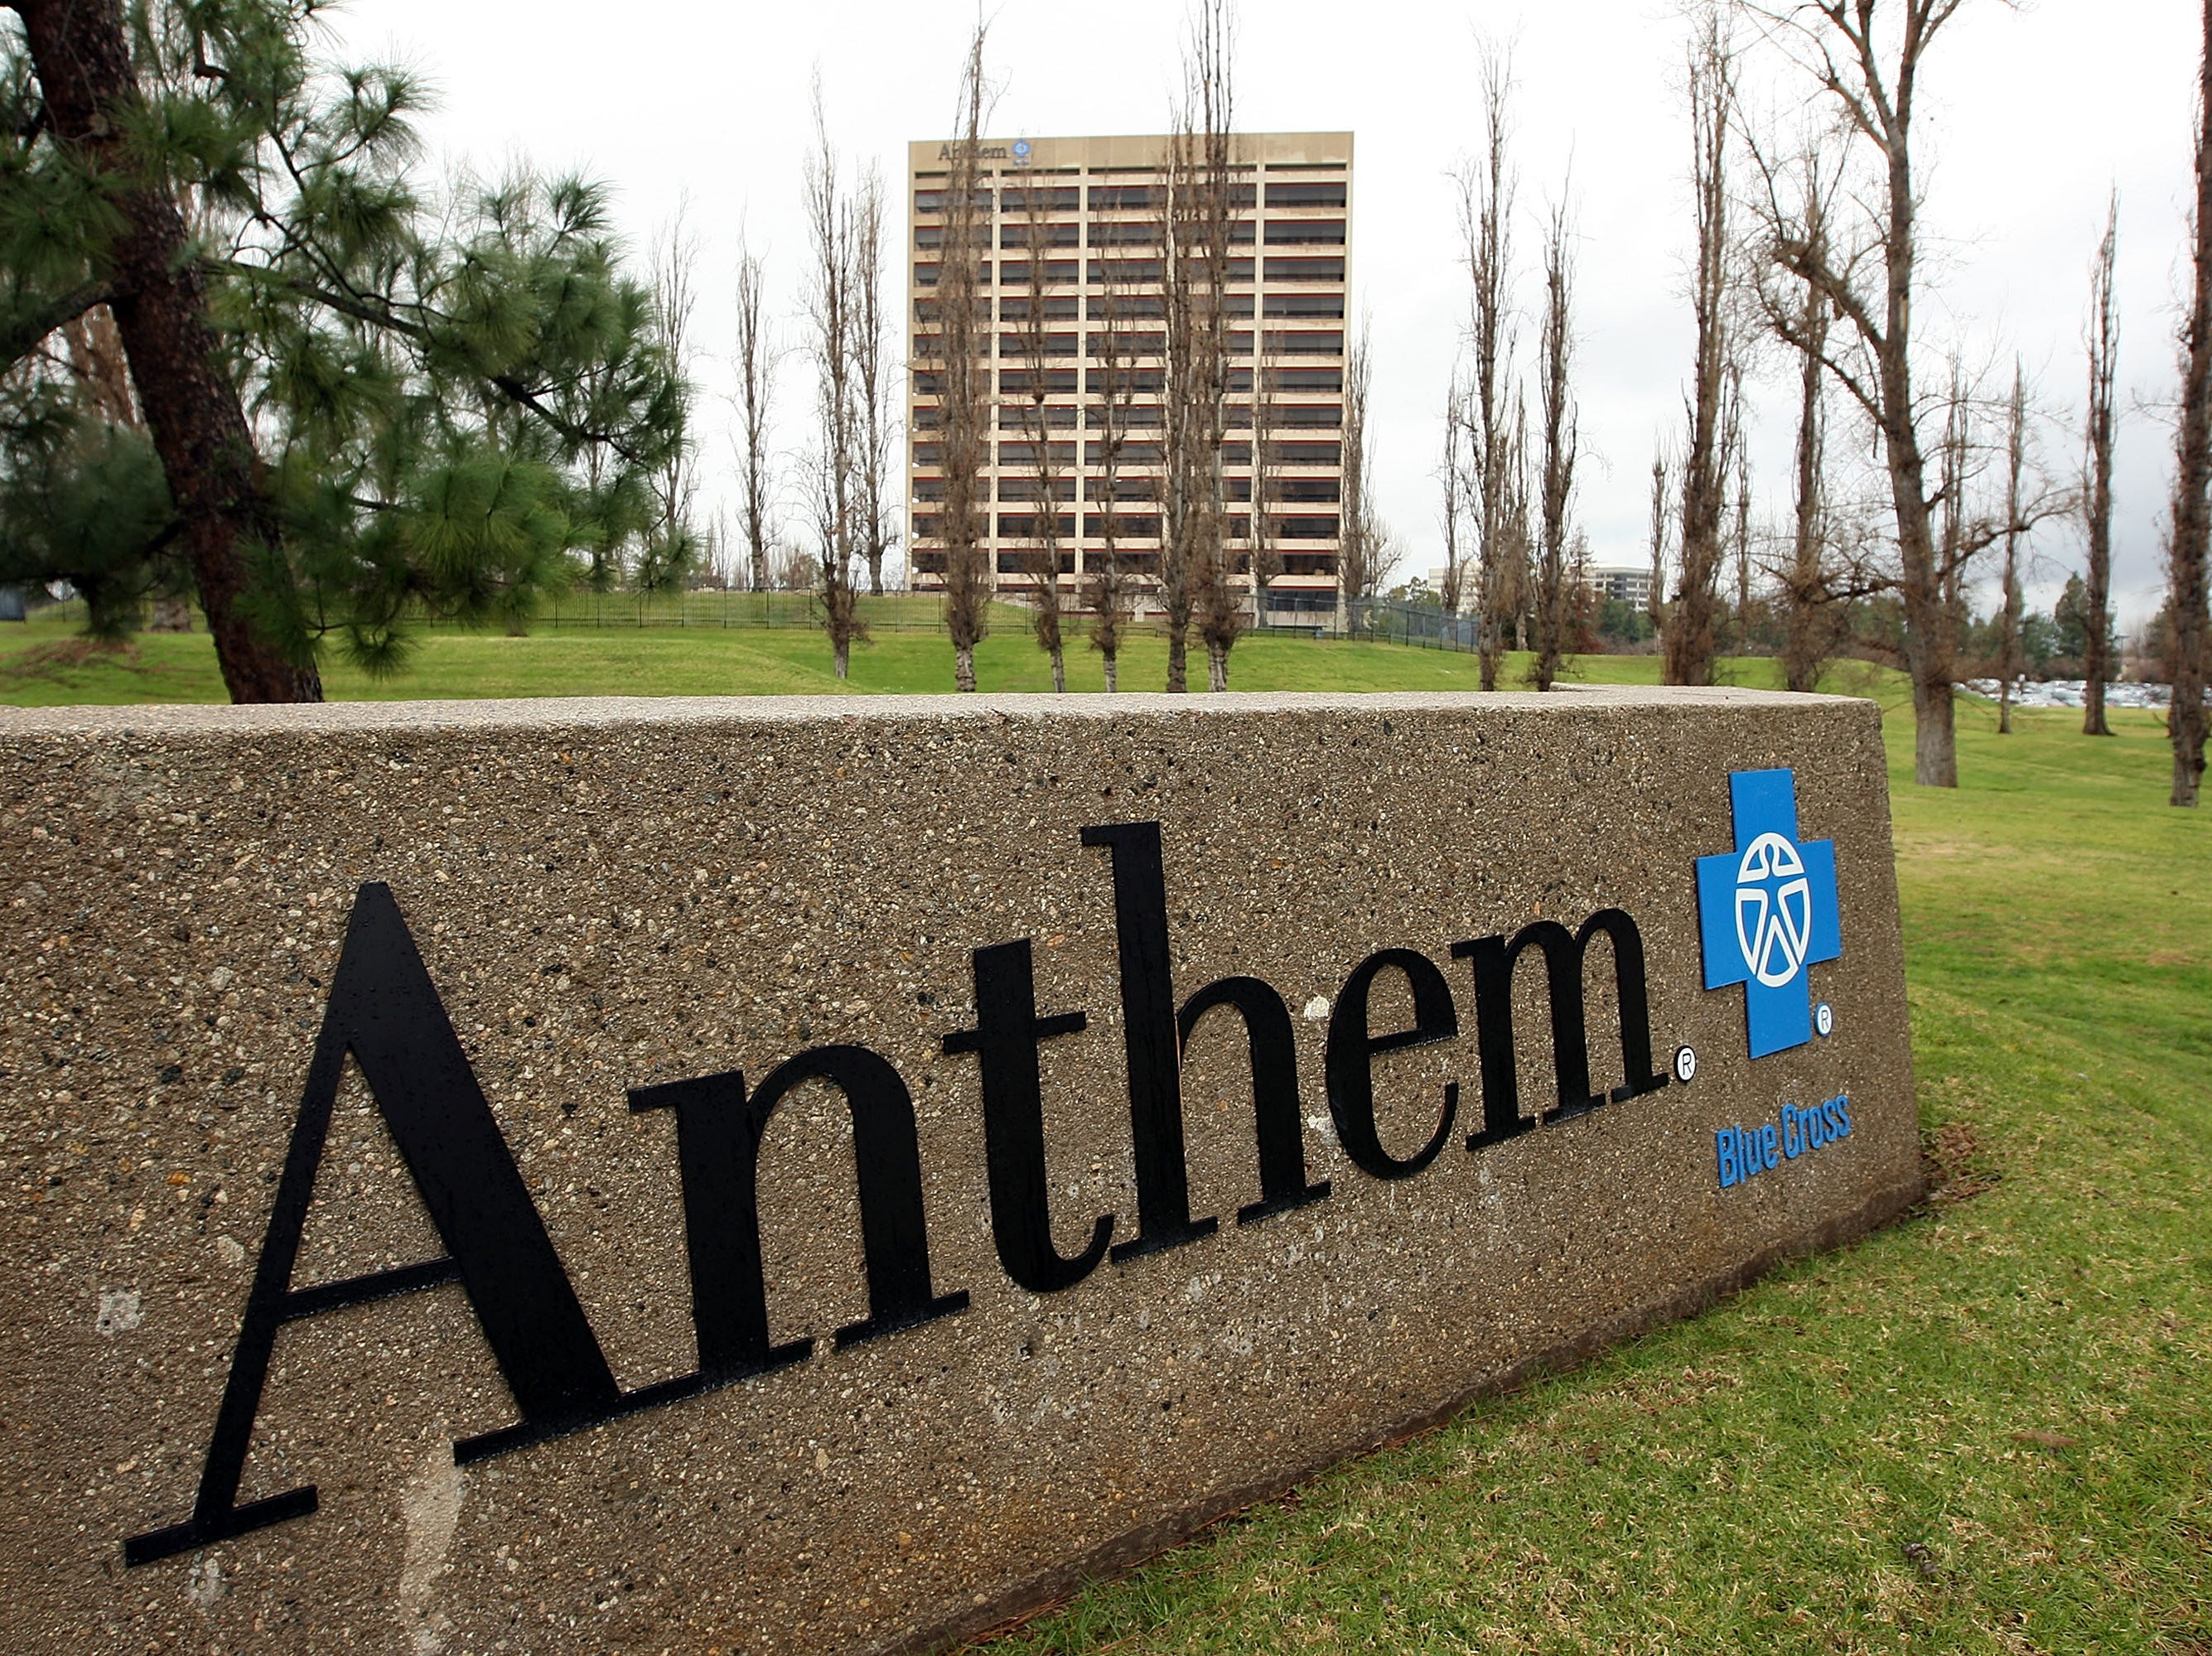 Anthem, hiring 830. The insurer has openings ranging from account managers to reimbursement specialists. More info: antheminc.jobs/arizona/usa/jobs.